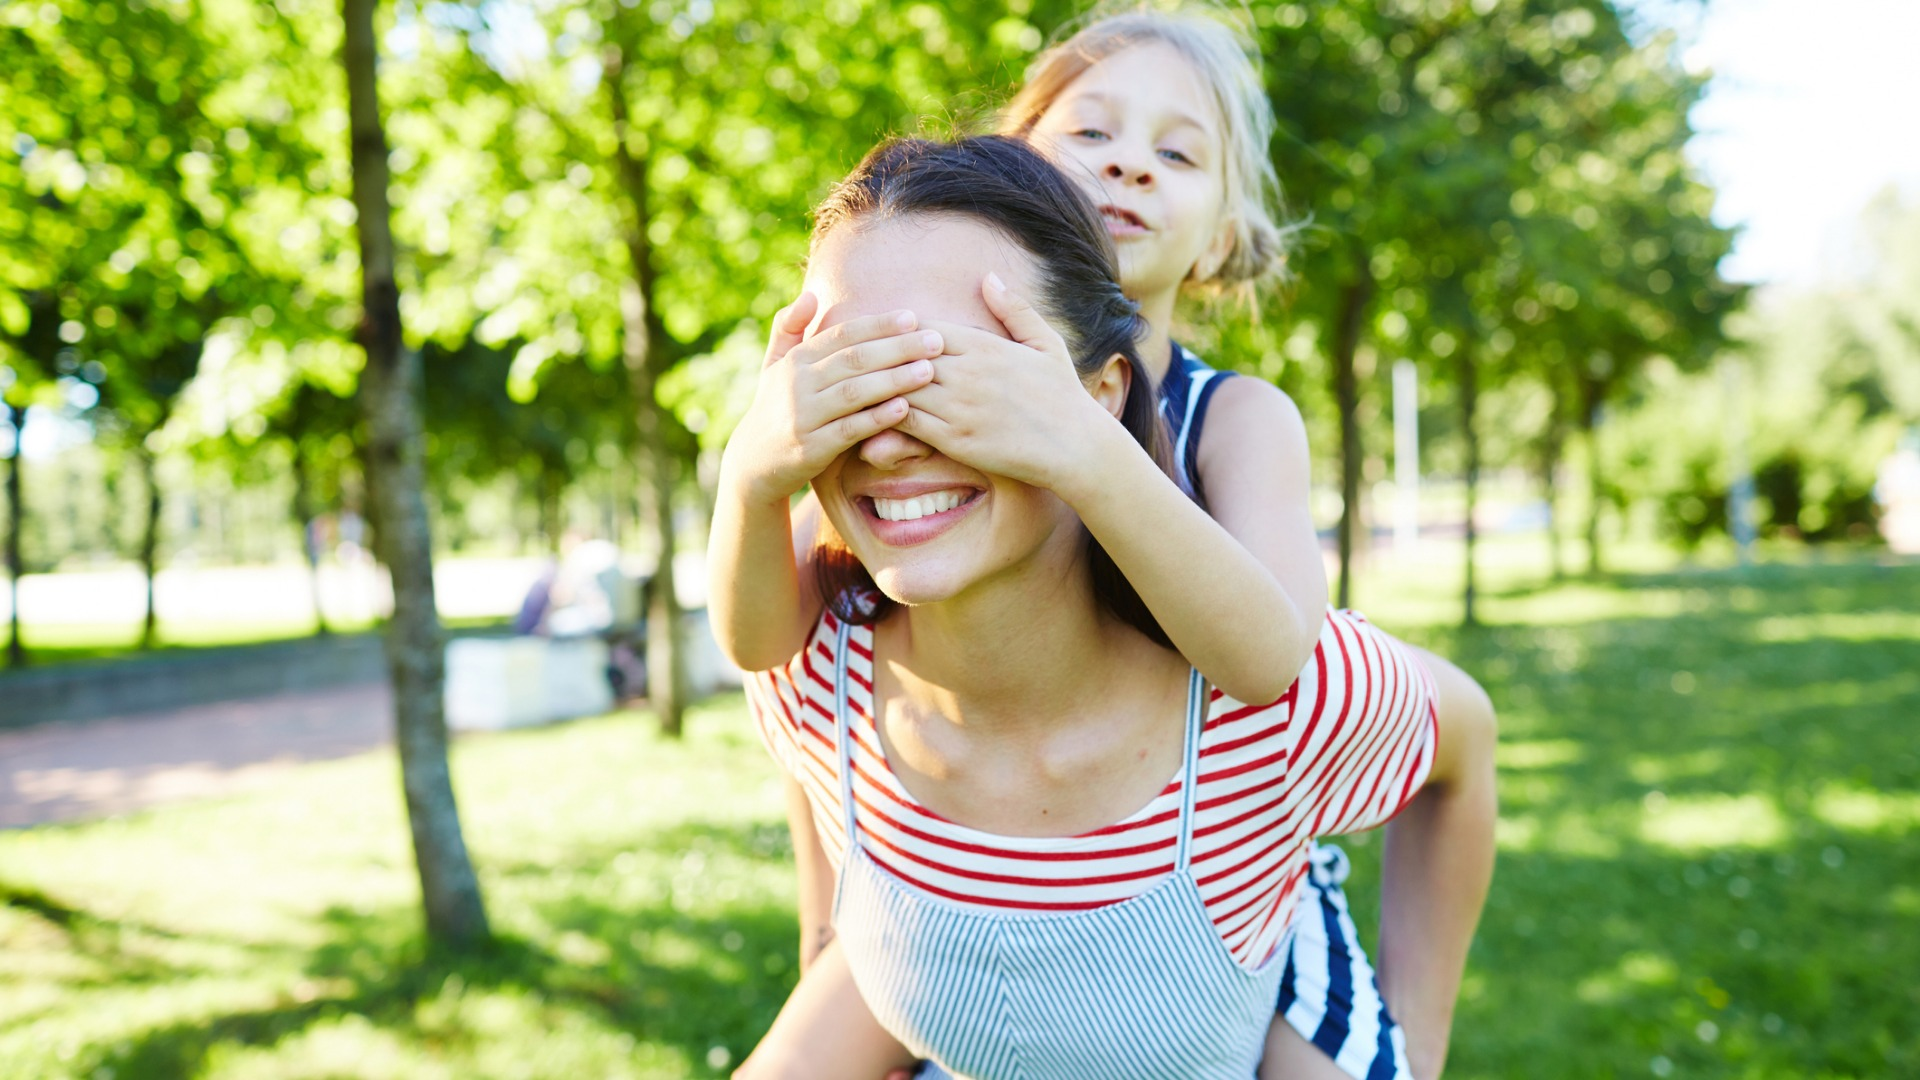 fun-with-mother-picture-id950067580